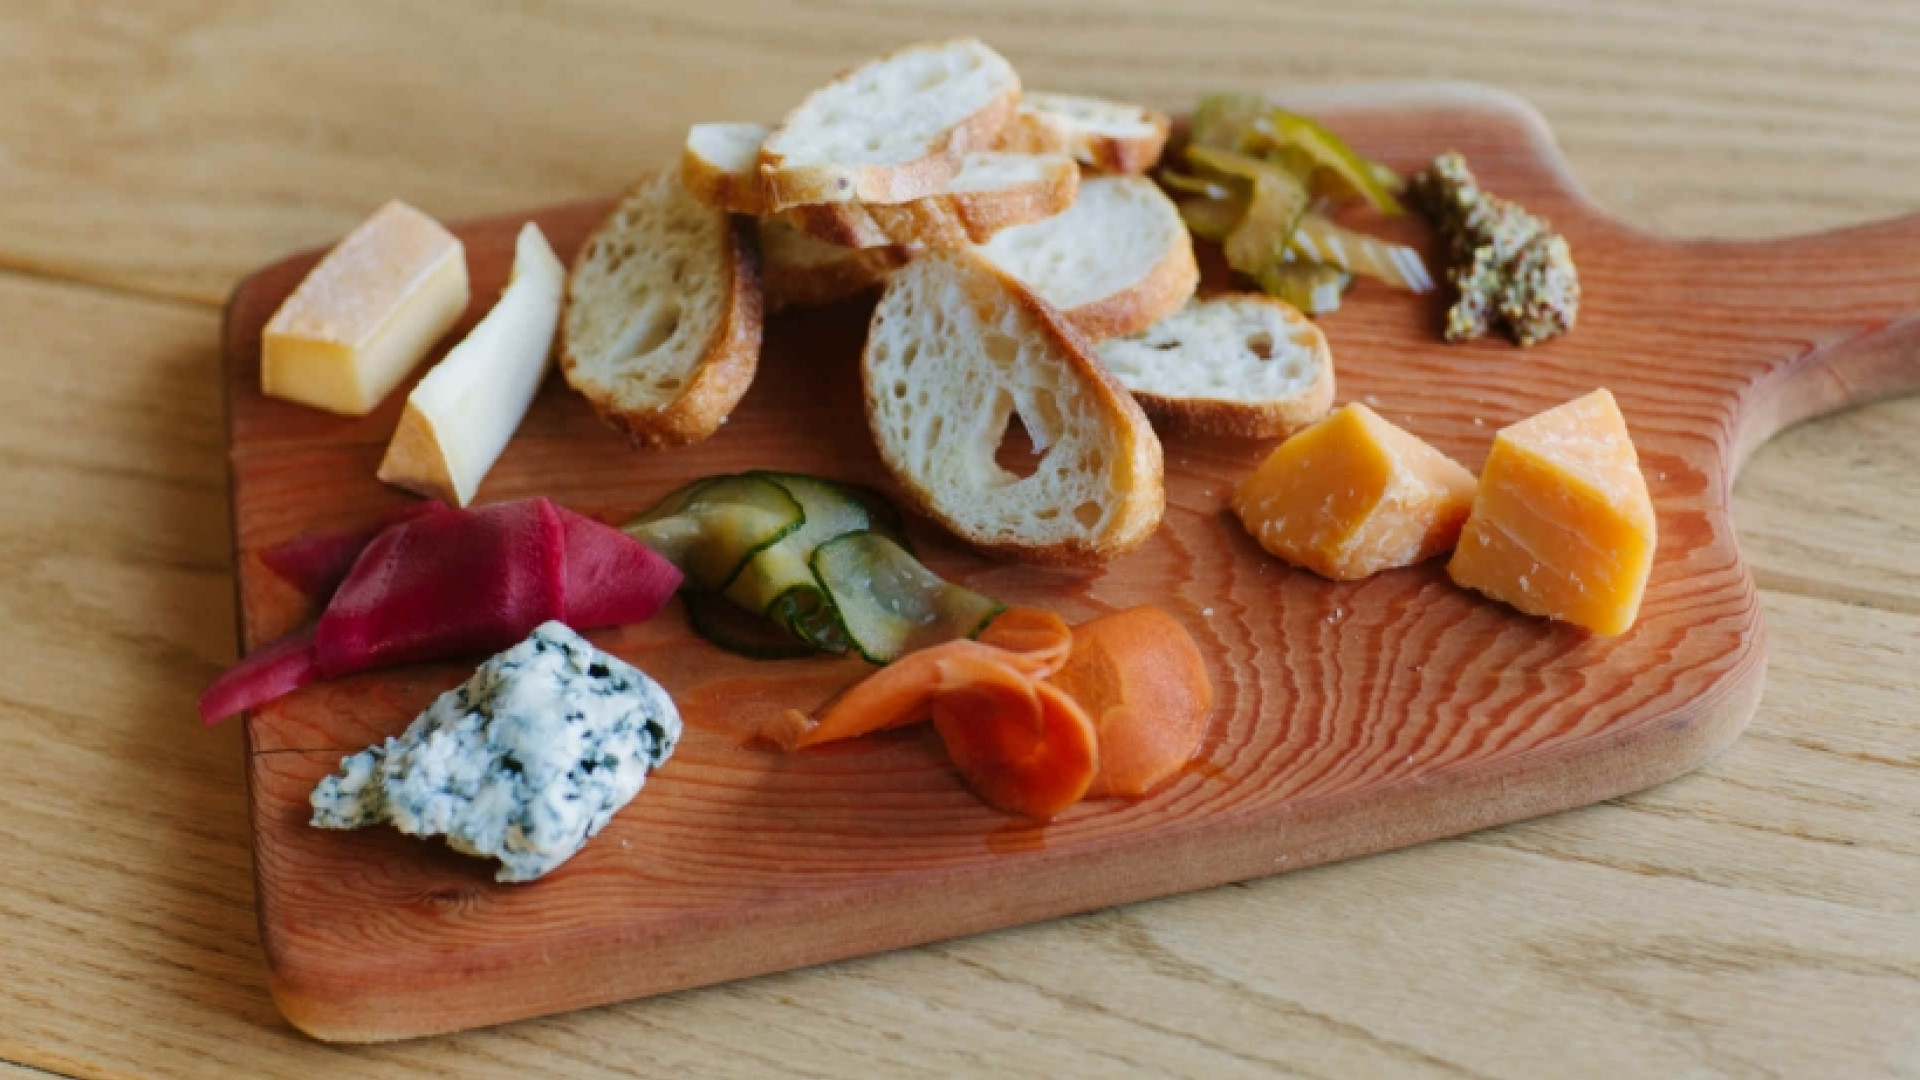 Alcohol delivery in Toronto | A charcuterie board at Bandit Brewery and restaurant in Toronto